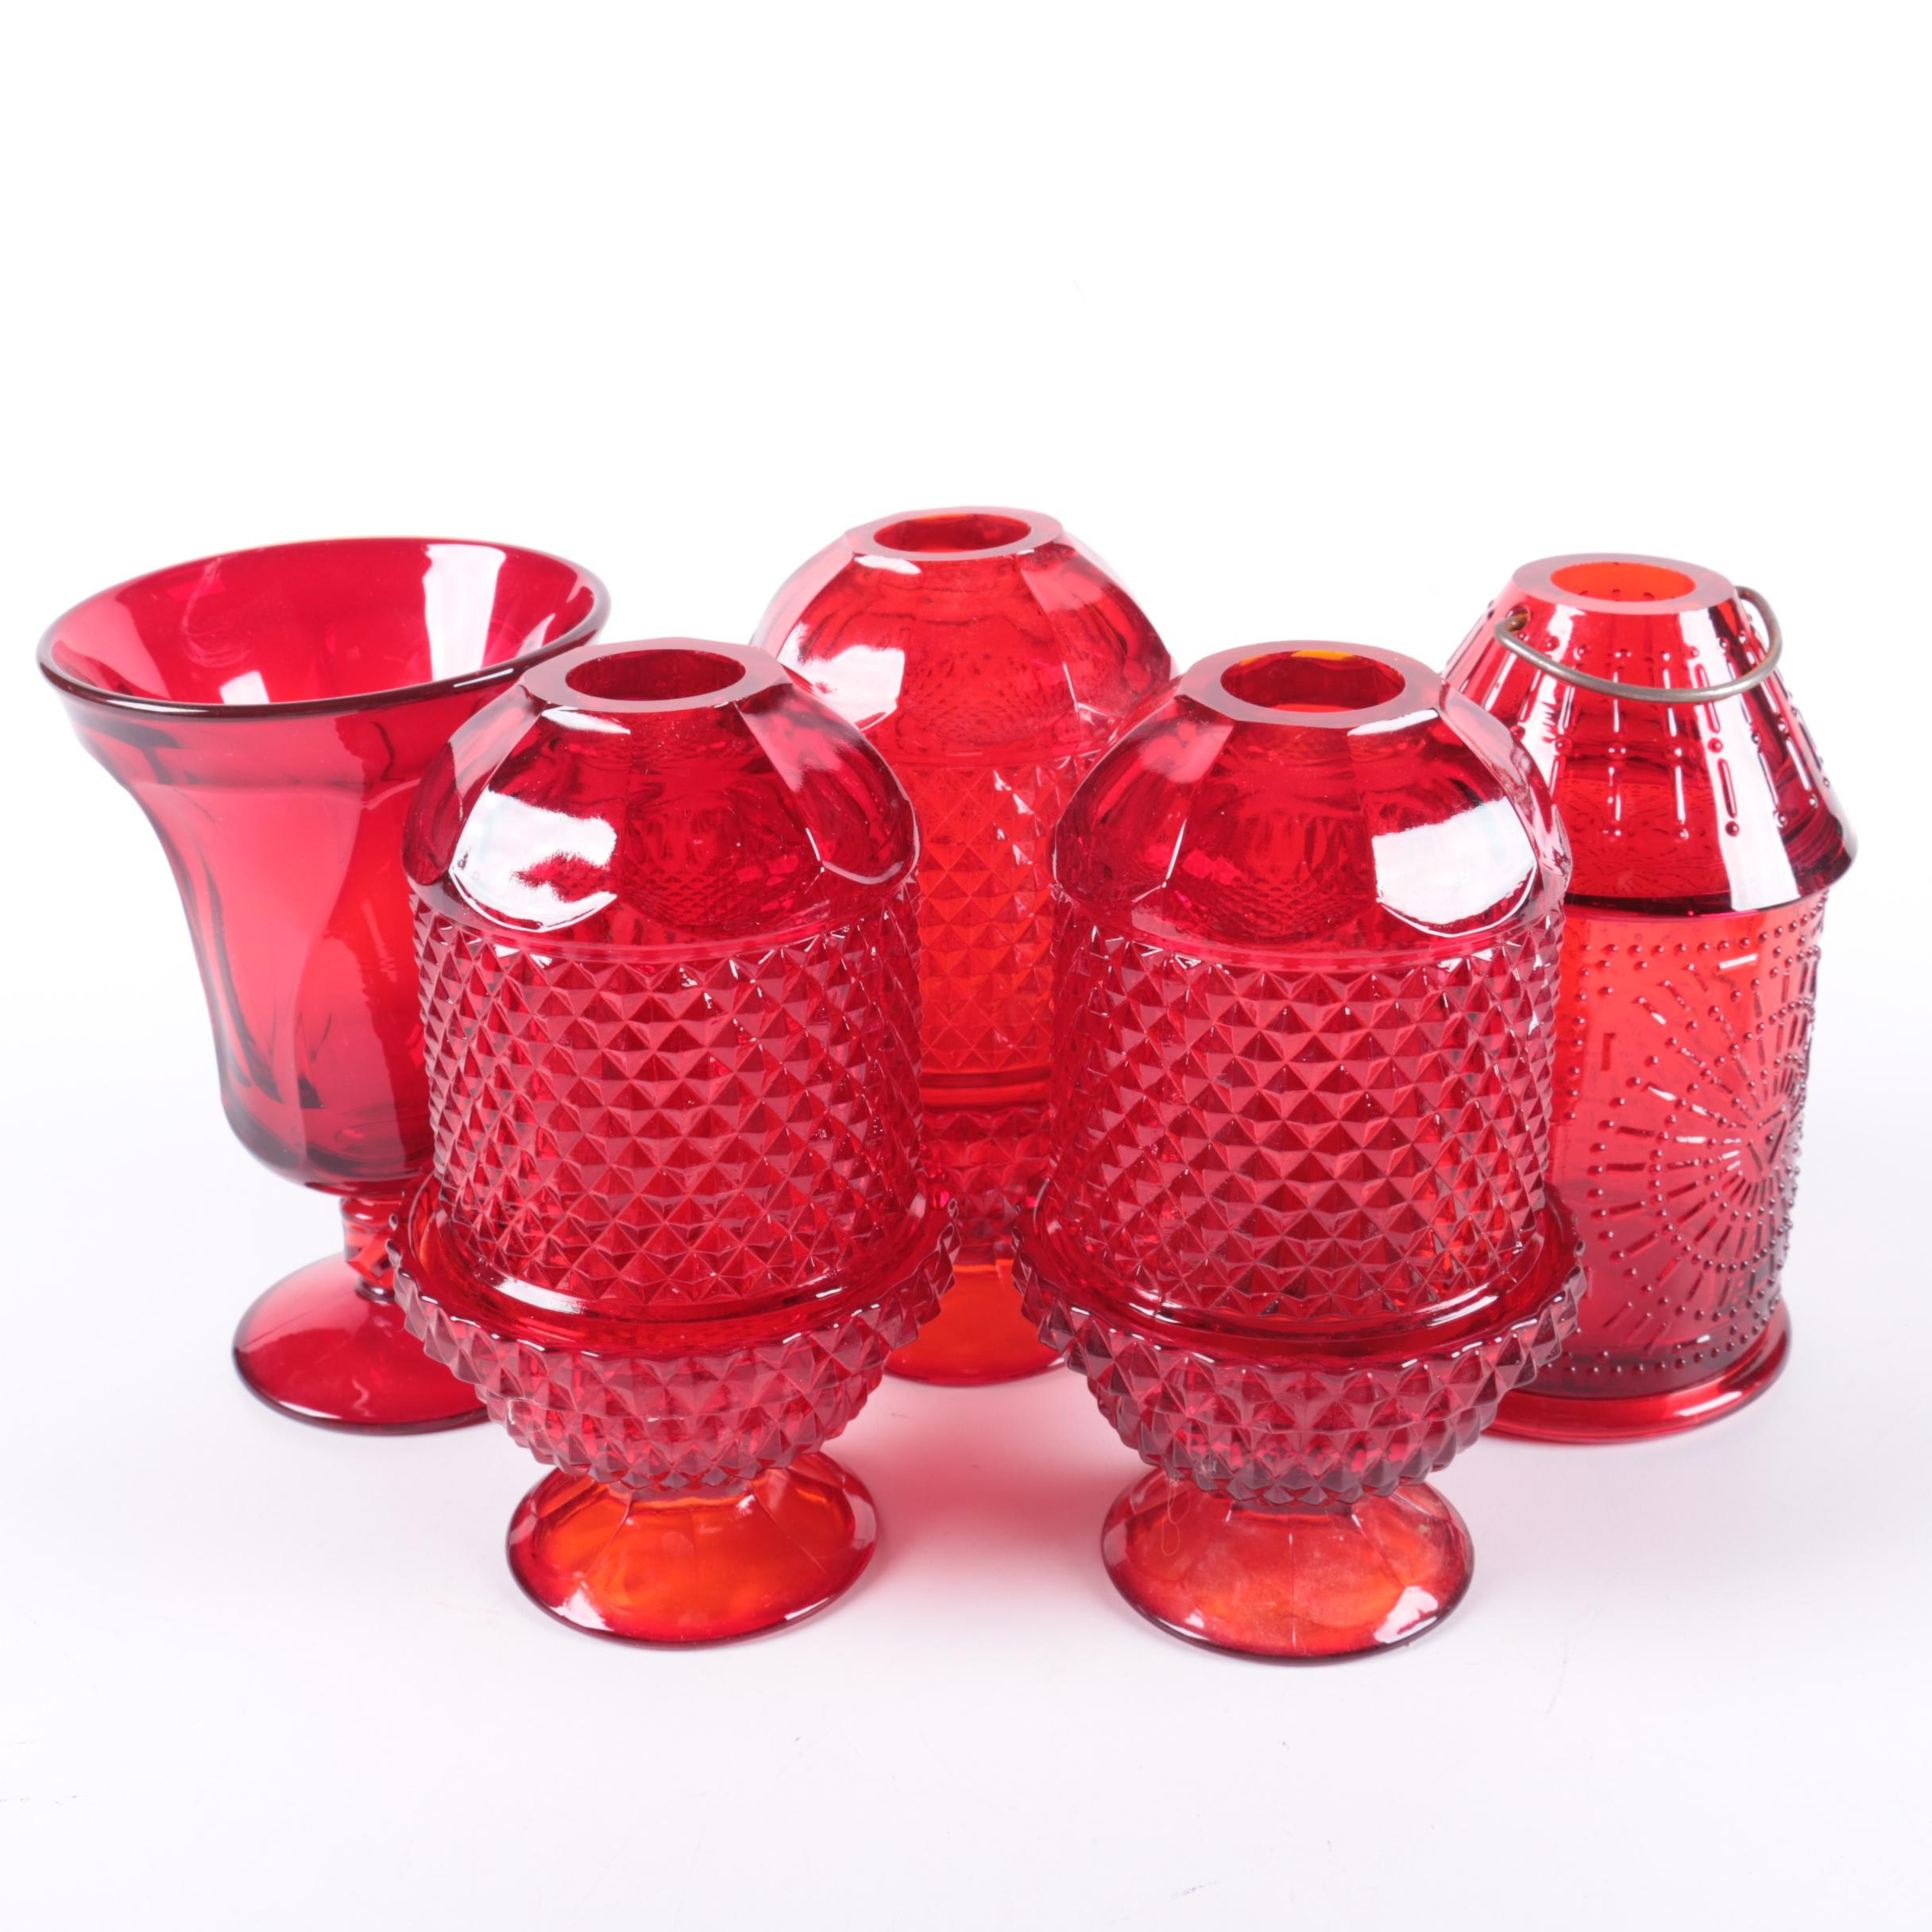 Assorted Colored Red Glass Candle Holders, Lantern, and Vase